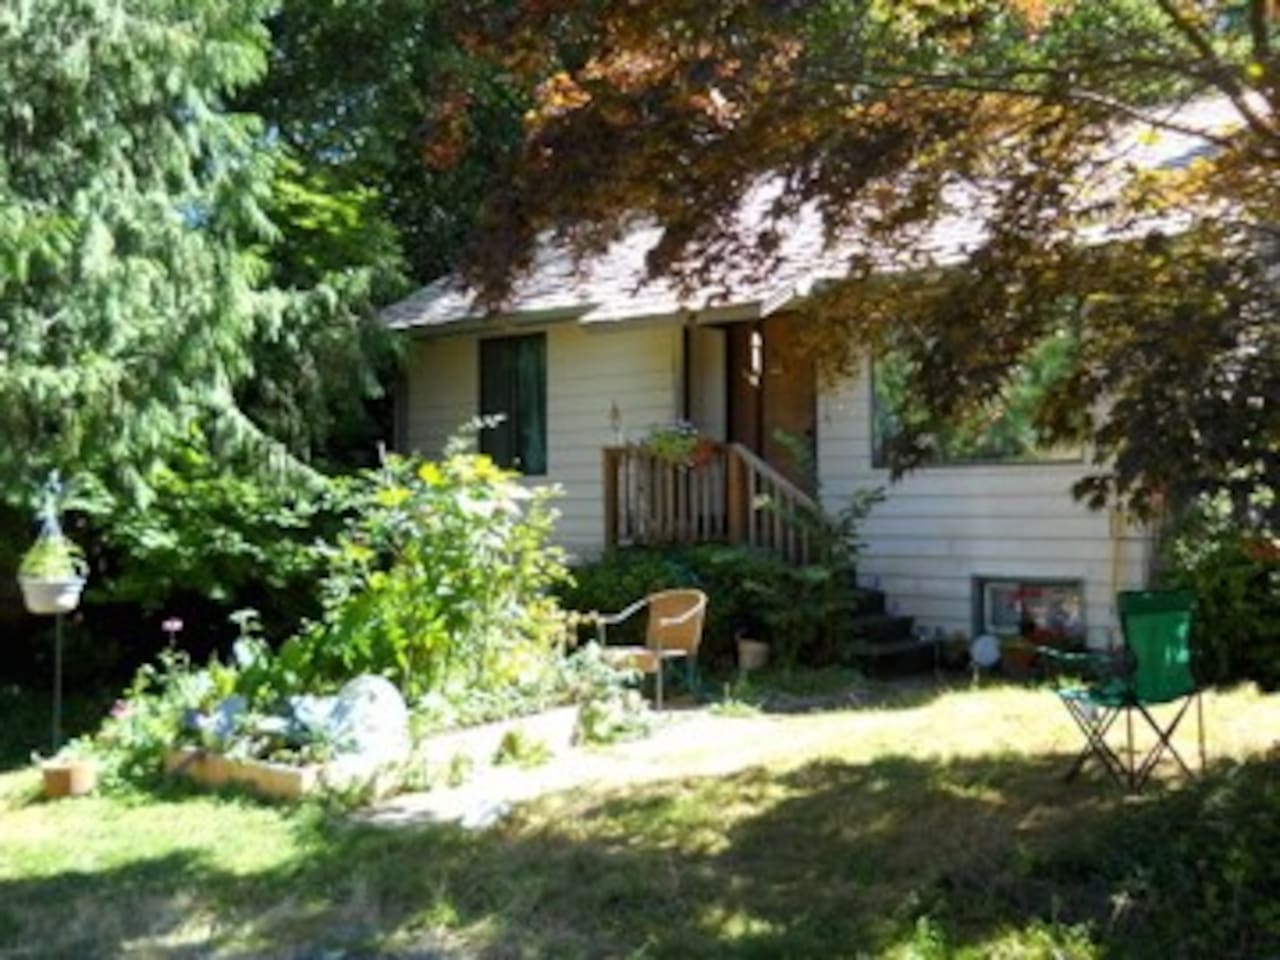 Maple Creek House and Garden